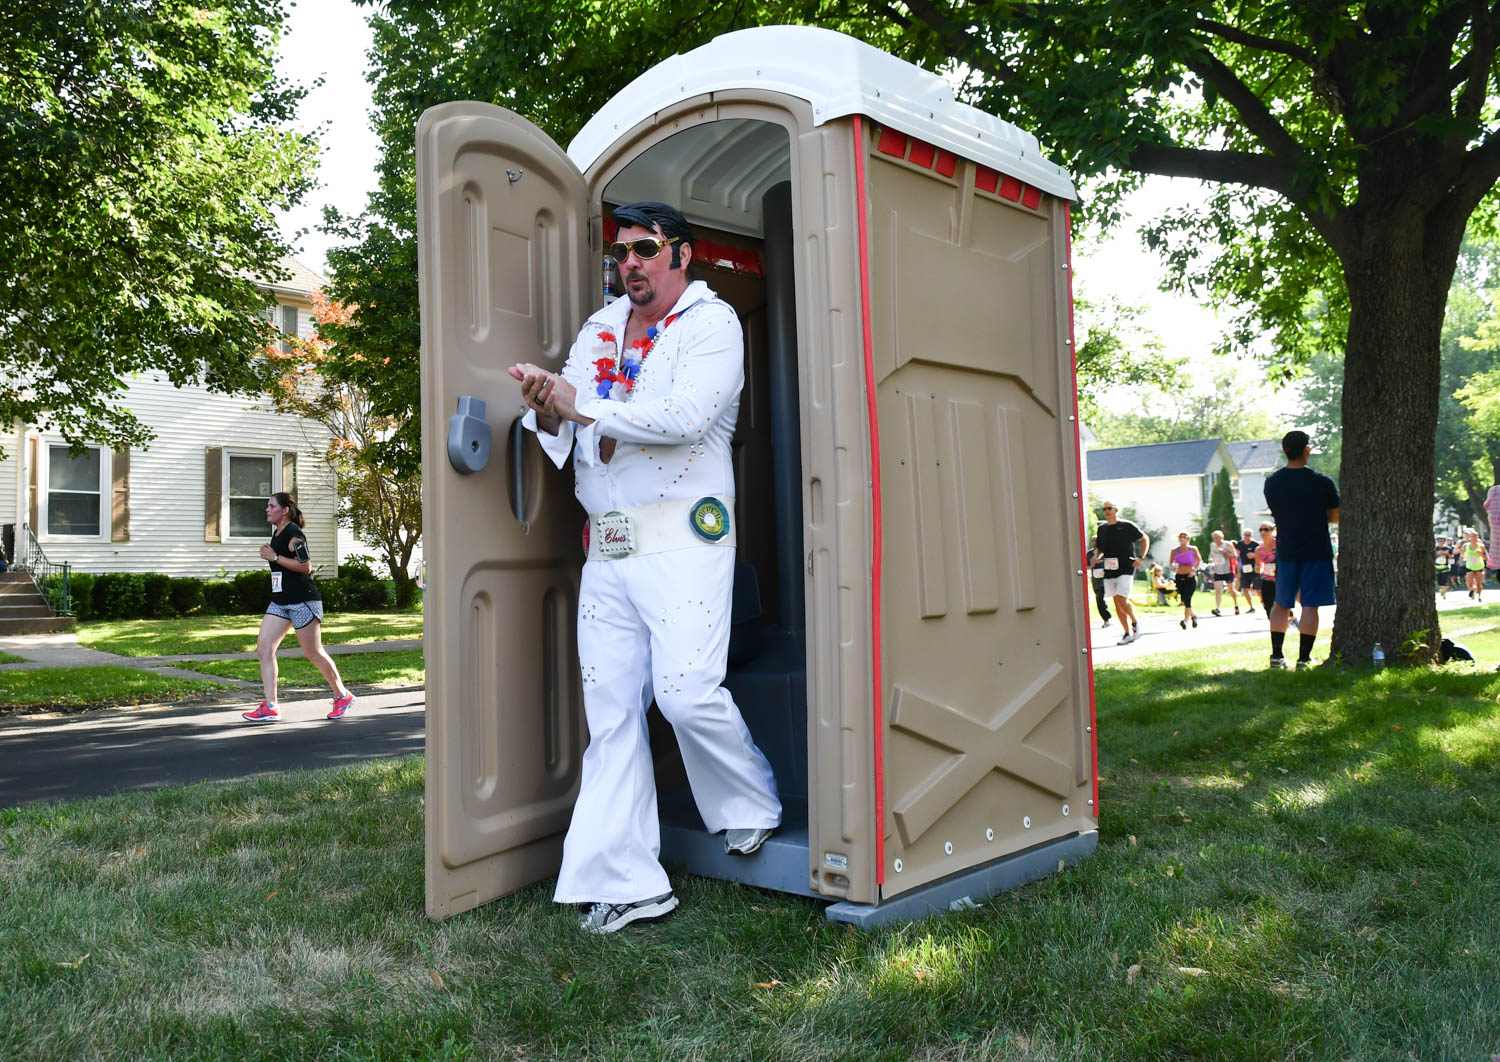 "Running Elvis Scott Cullen, of Taylor Ridge, survives the port-a-potty along Kirkwood Blvd. during the Quad-City Times Bix 7 Saturday, July 28, 2018 in Davenport, Iowa. Upon exiting the port-a-potty Cullen quipped ""Wow. I smells like something died in there."" (Todd Mizener - Dispatch/Argus)"